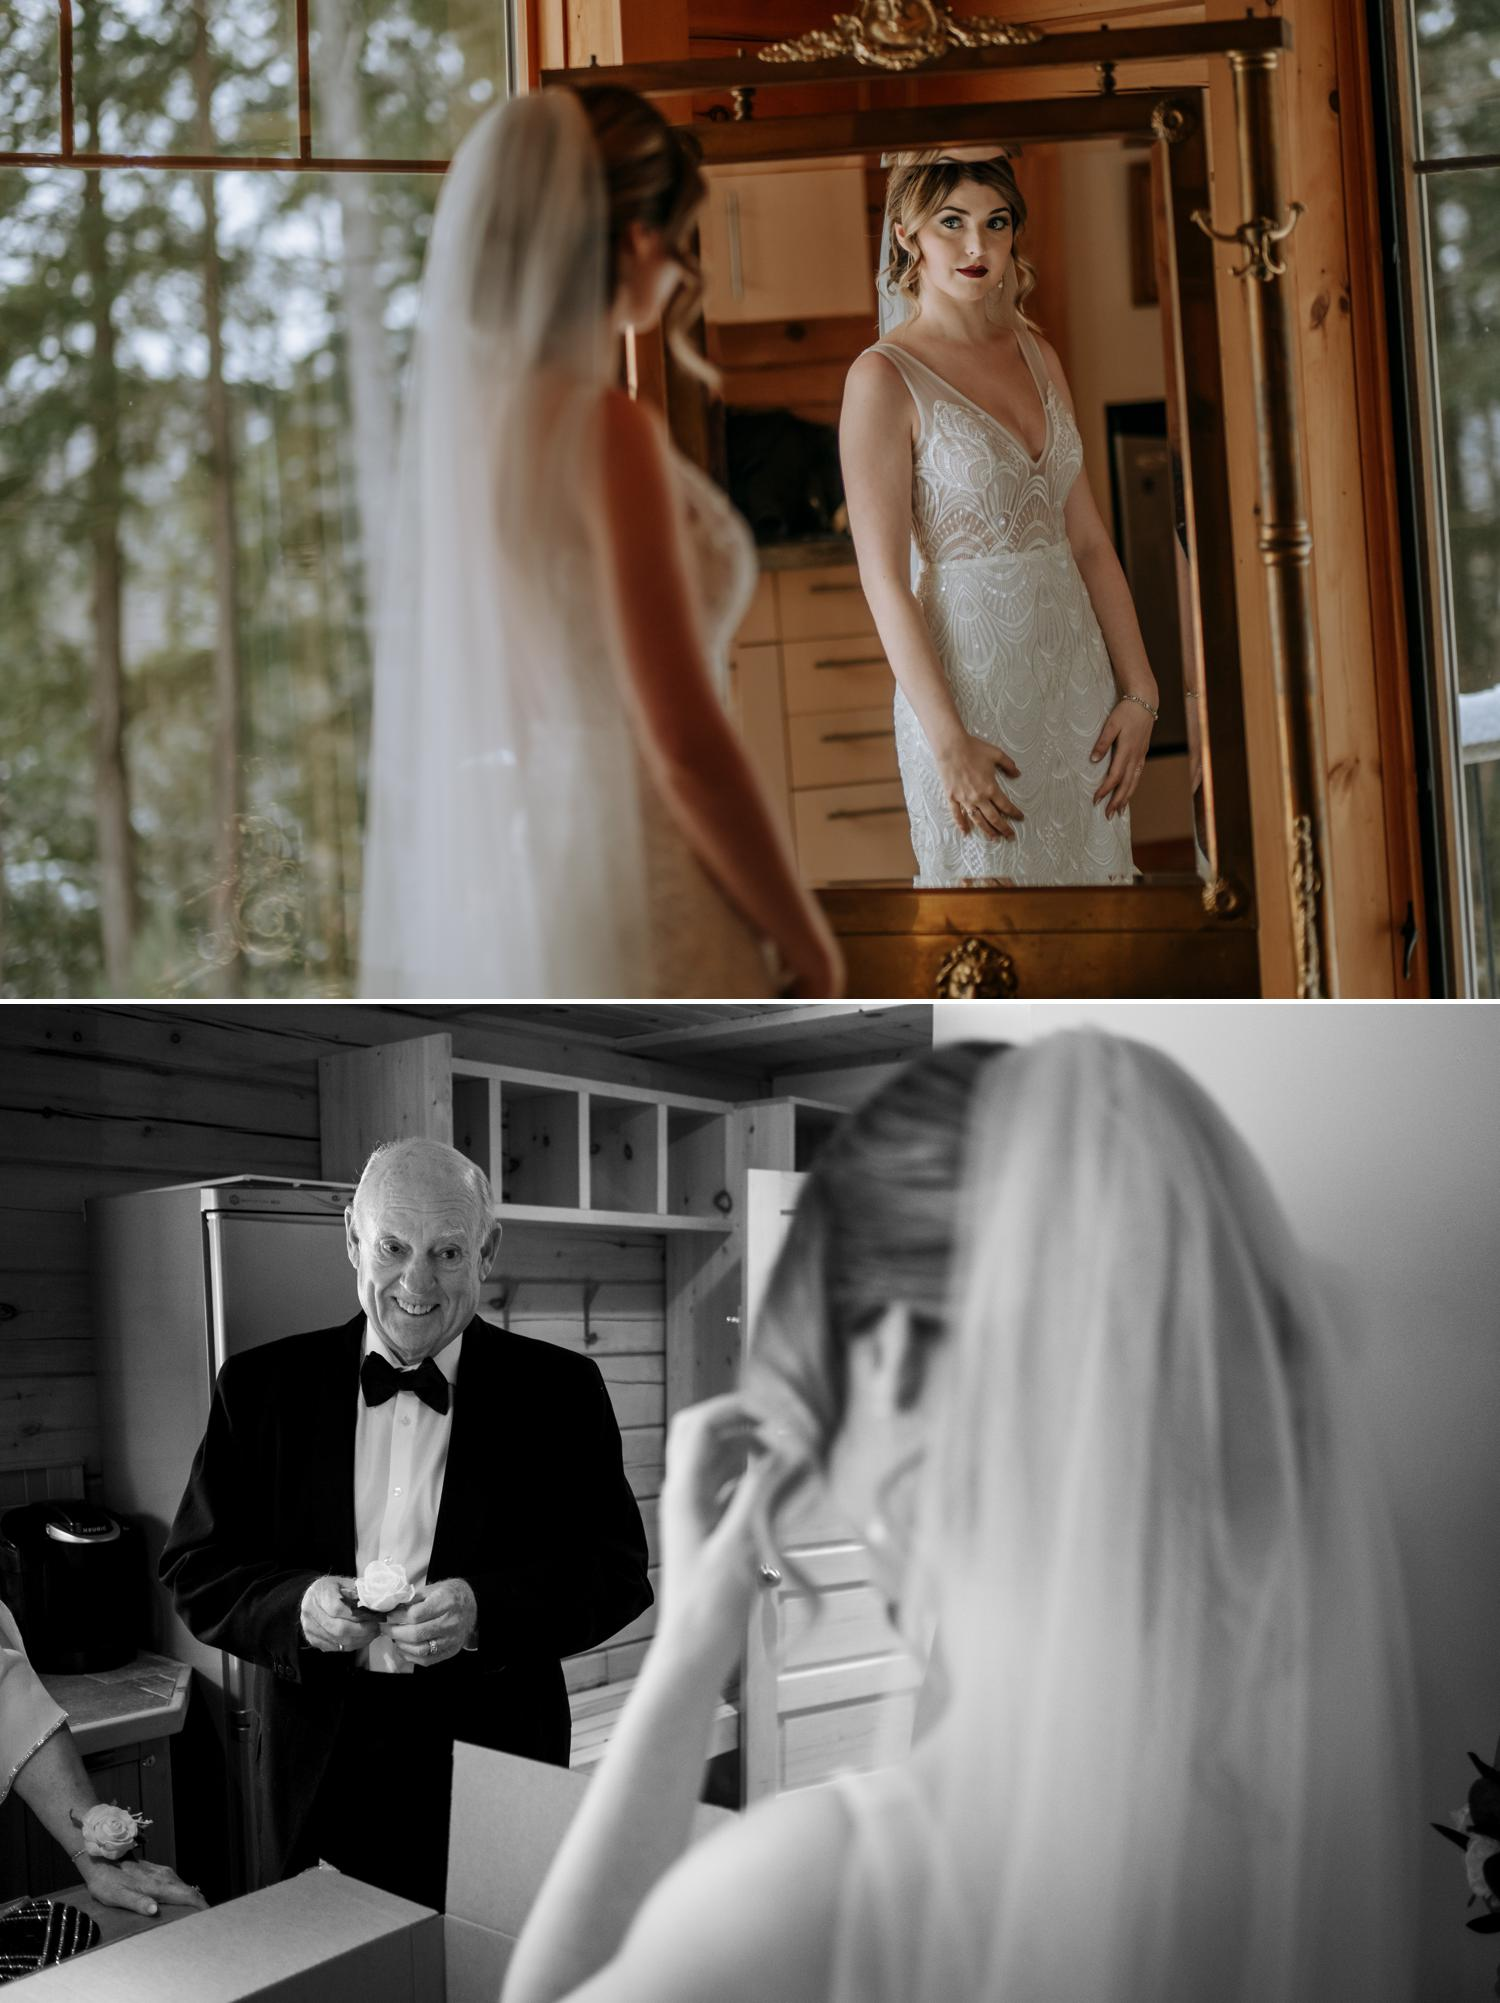 photo of a bride seeing herself in a mirror